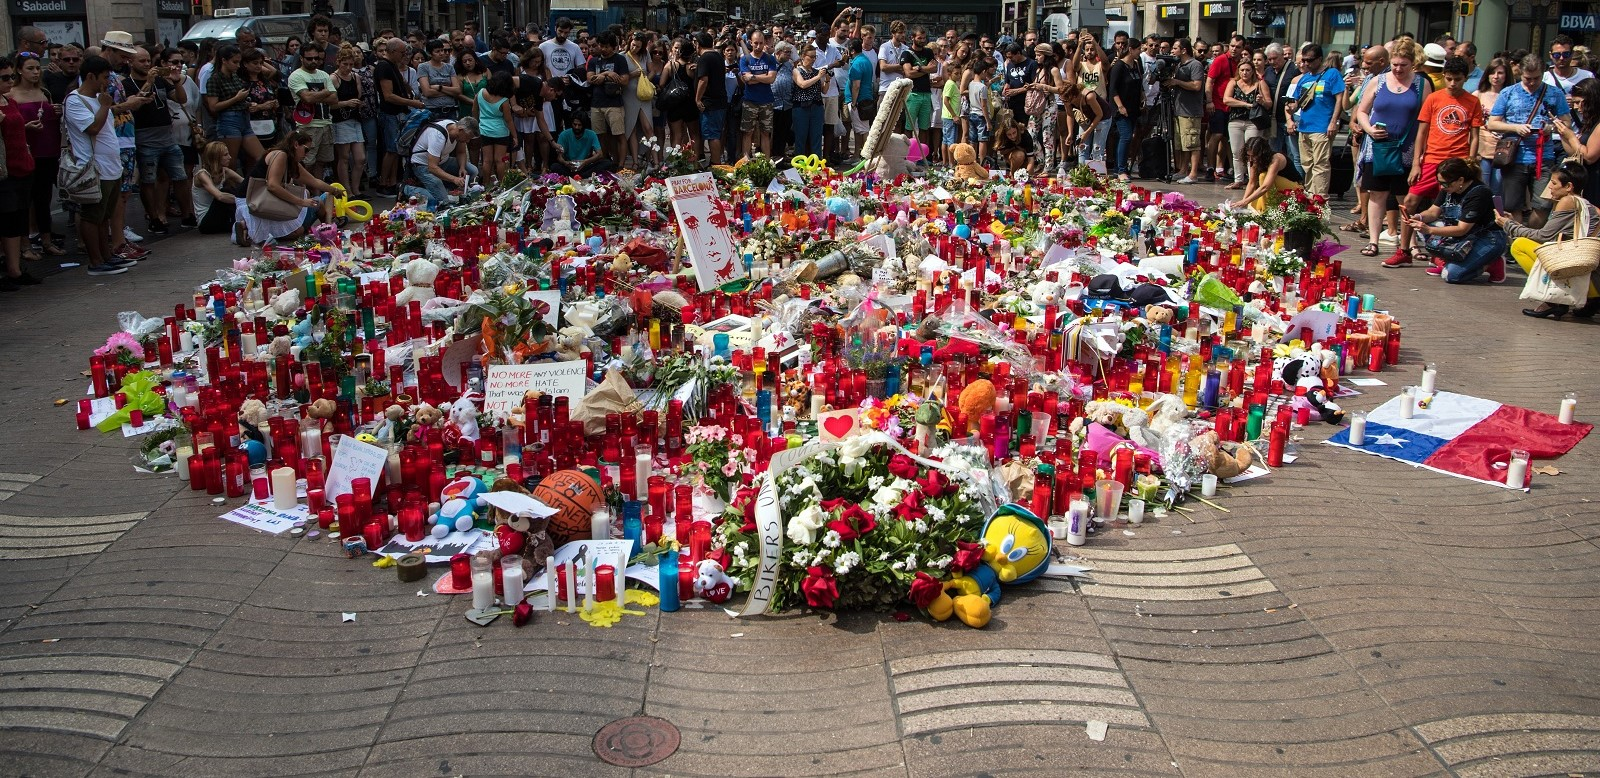 People gather around tributes on Las Ramblas near the scene of Thursday's terrorist attack in Barcelona. (Photo:Carl Court/Getty Images)